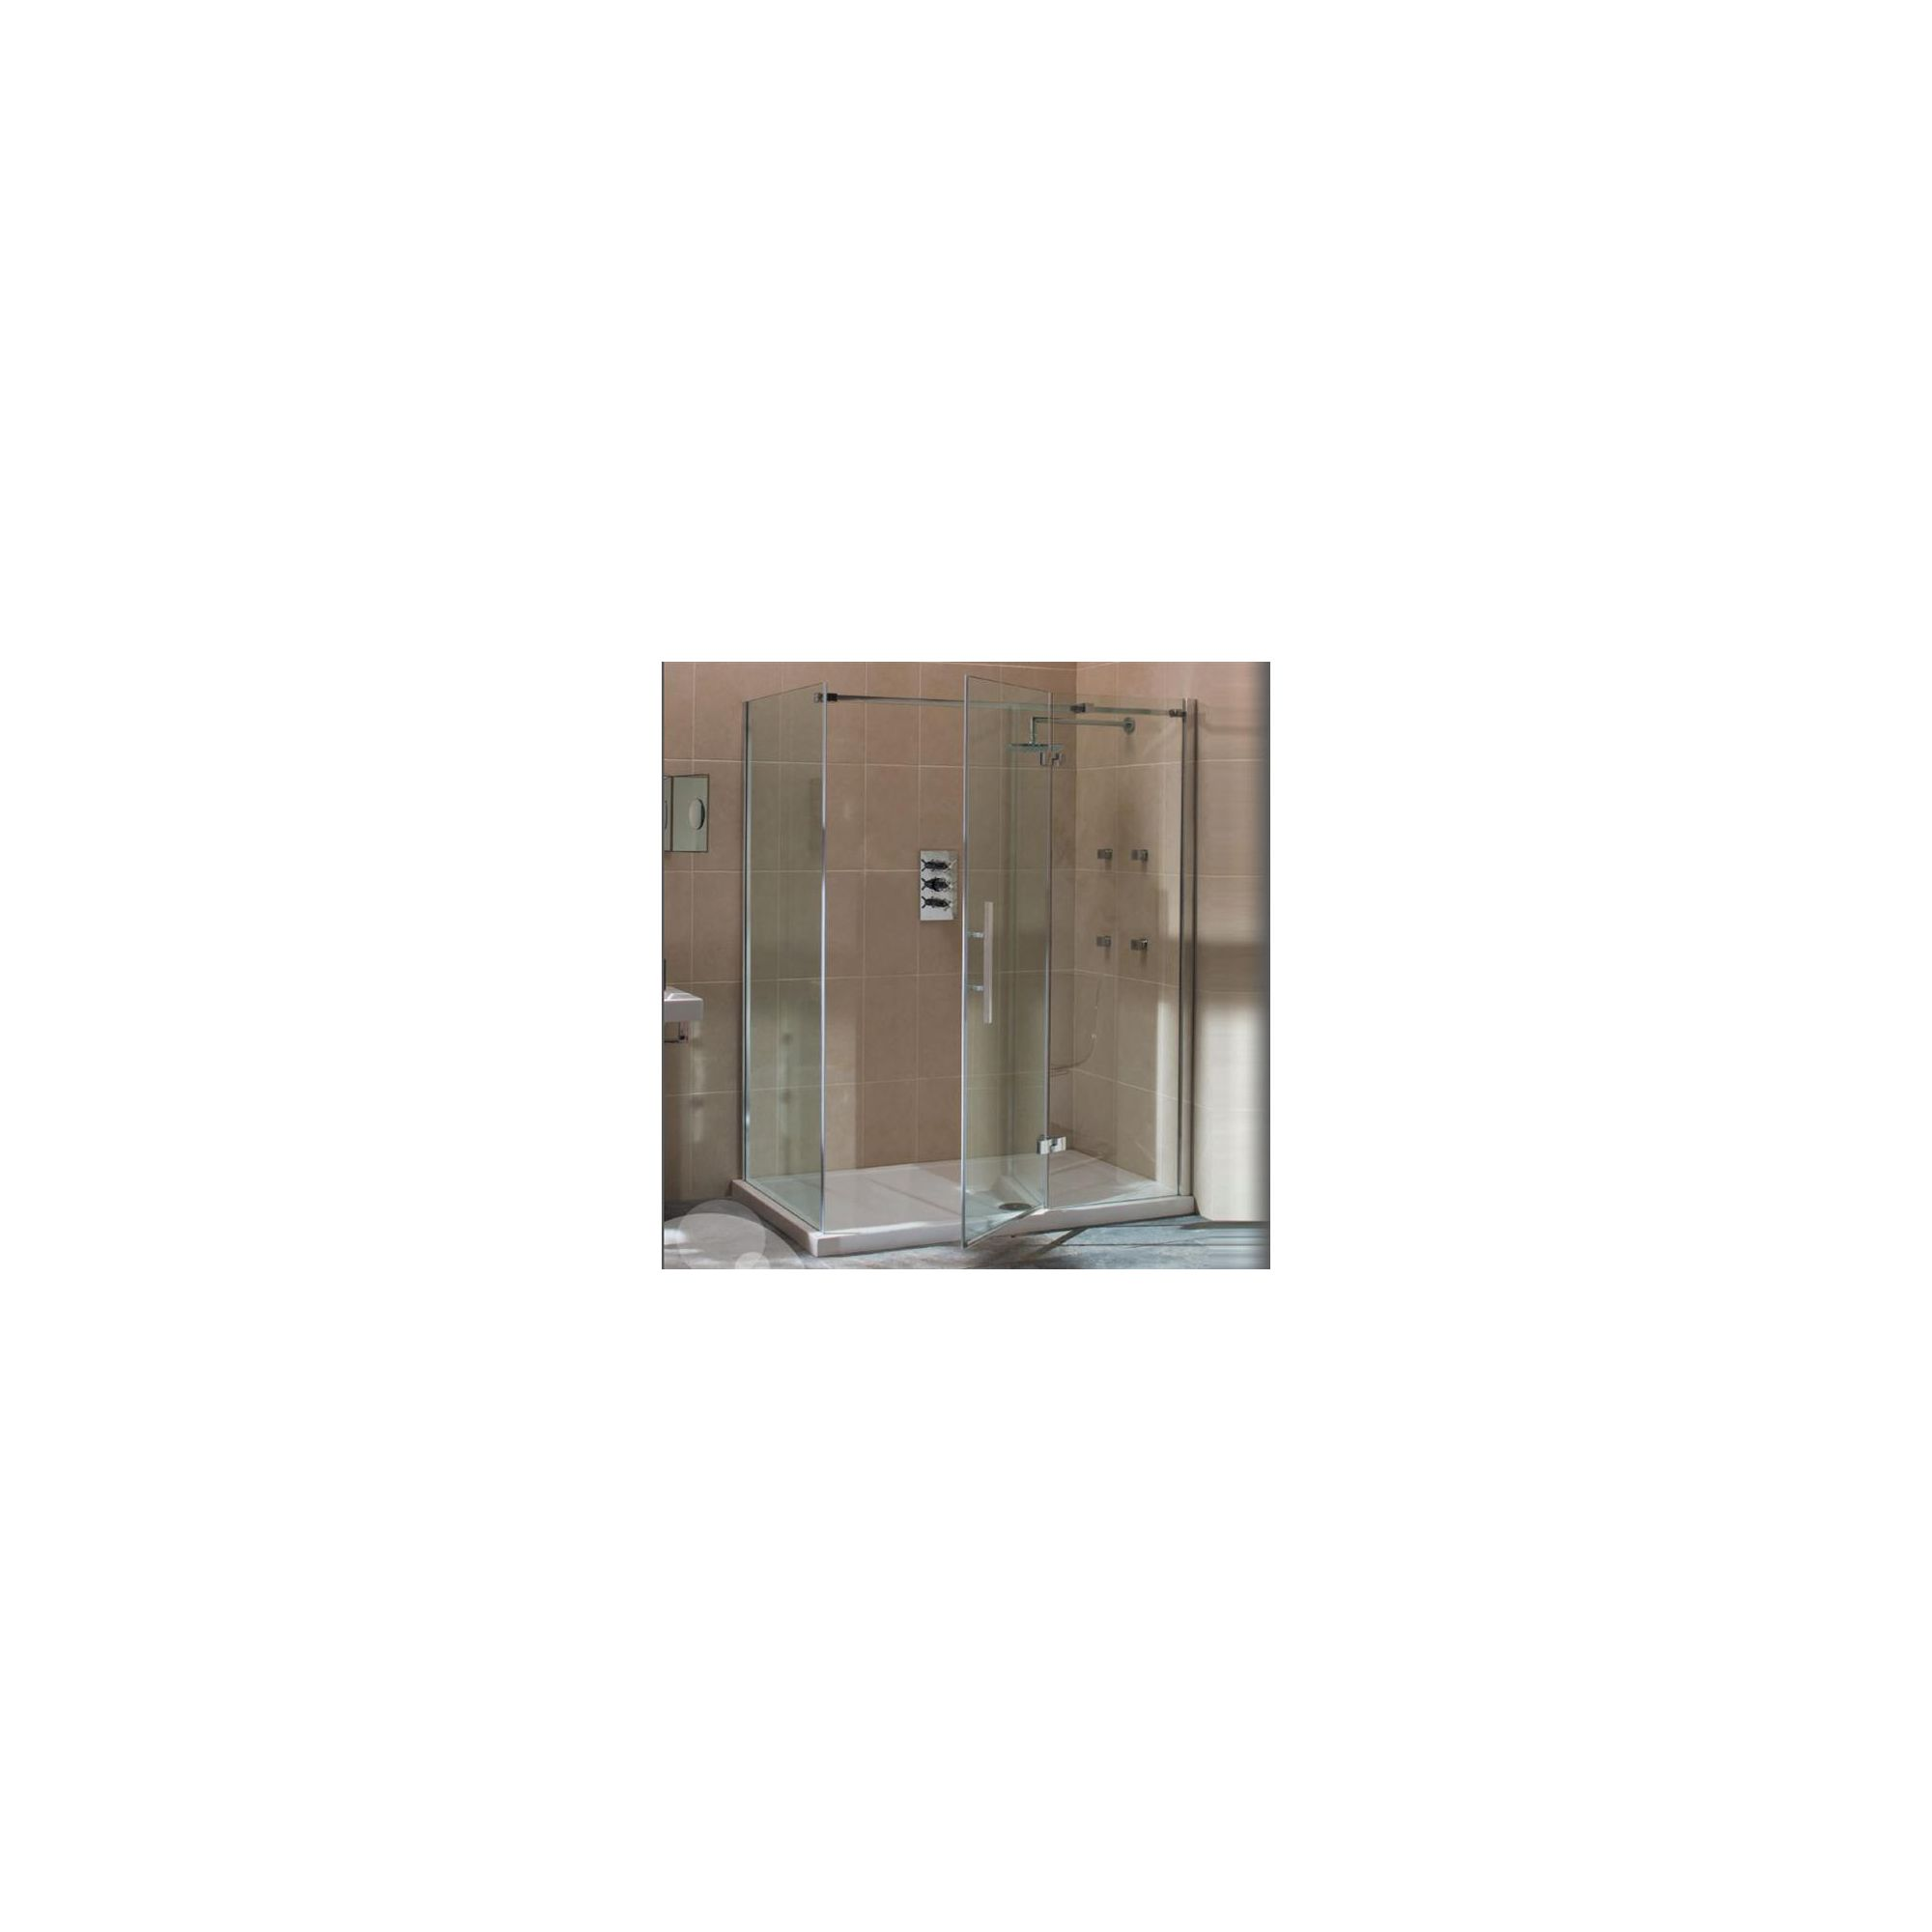 Merlyn Vivid Nine Hinged Door Shower Enclosure with Inline Panel, 1600mm x 800mm, Right Handed, Low Profile Tray, 8mm Glass at Tescos Direct